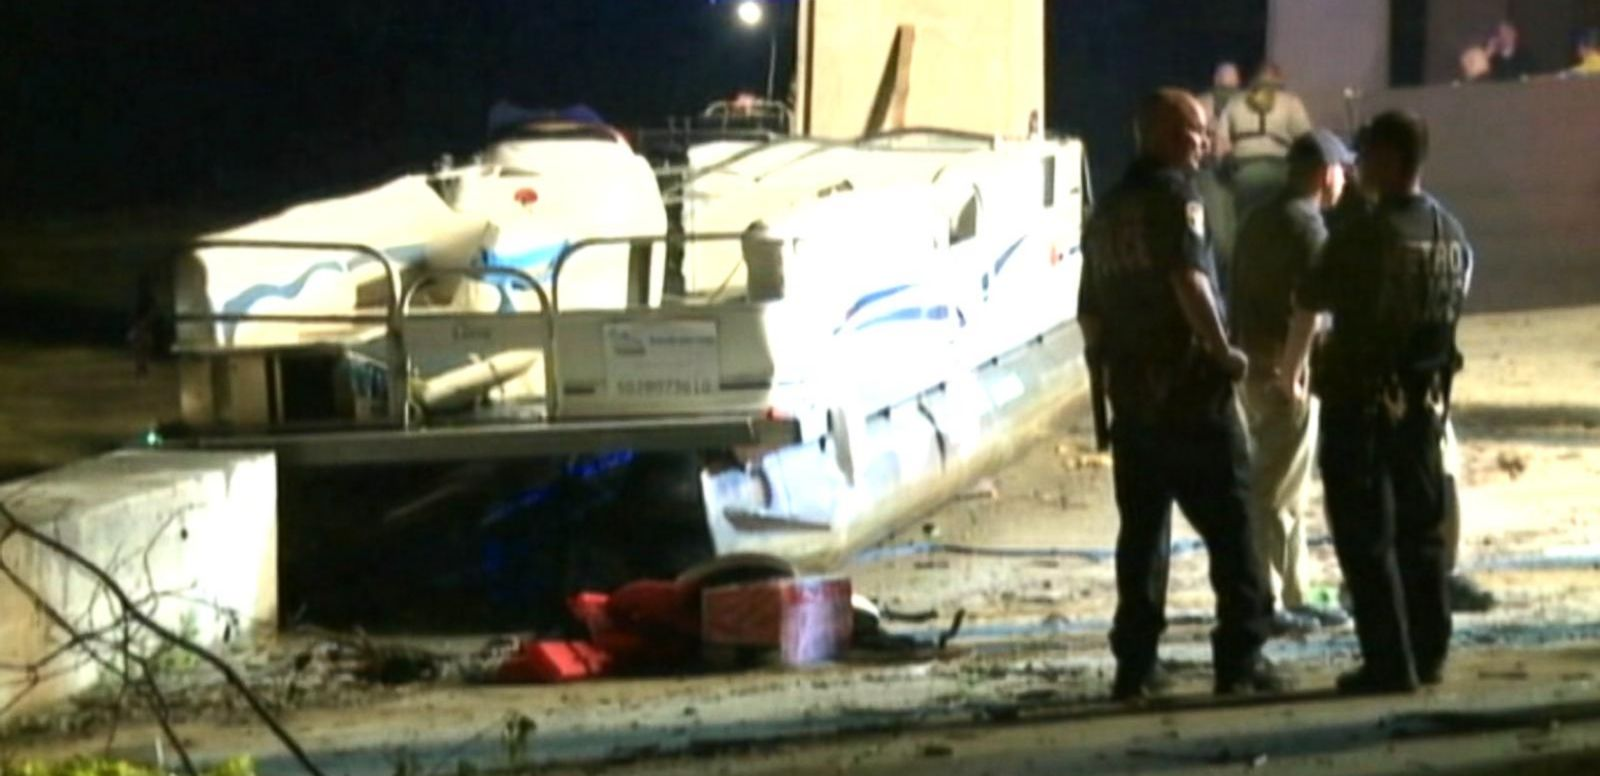 VIDEO: 2 Dead, 3 Missing in Ohio River Boating Accident